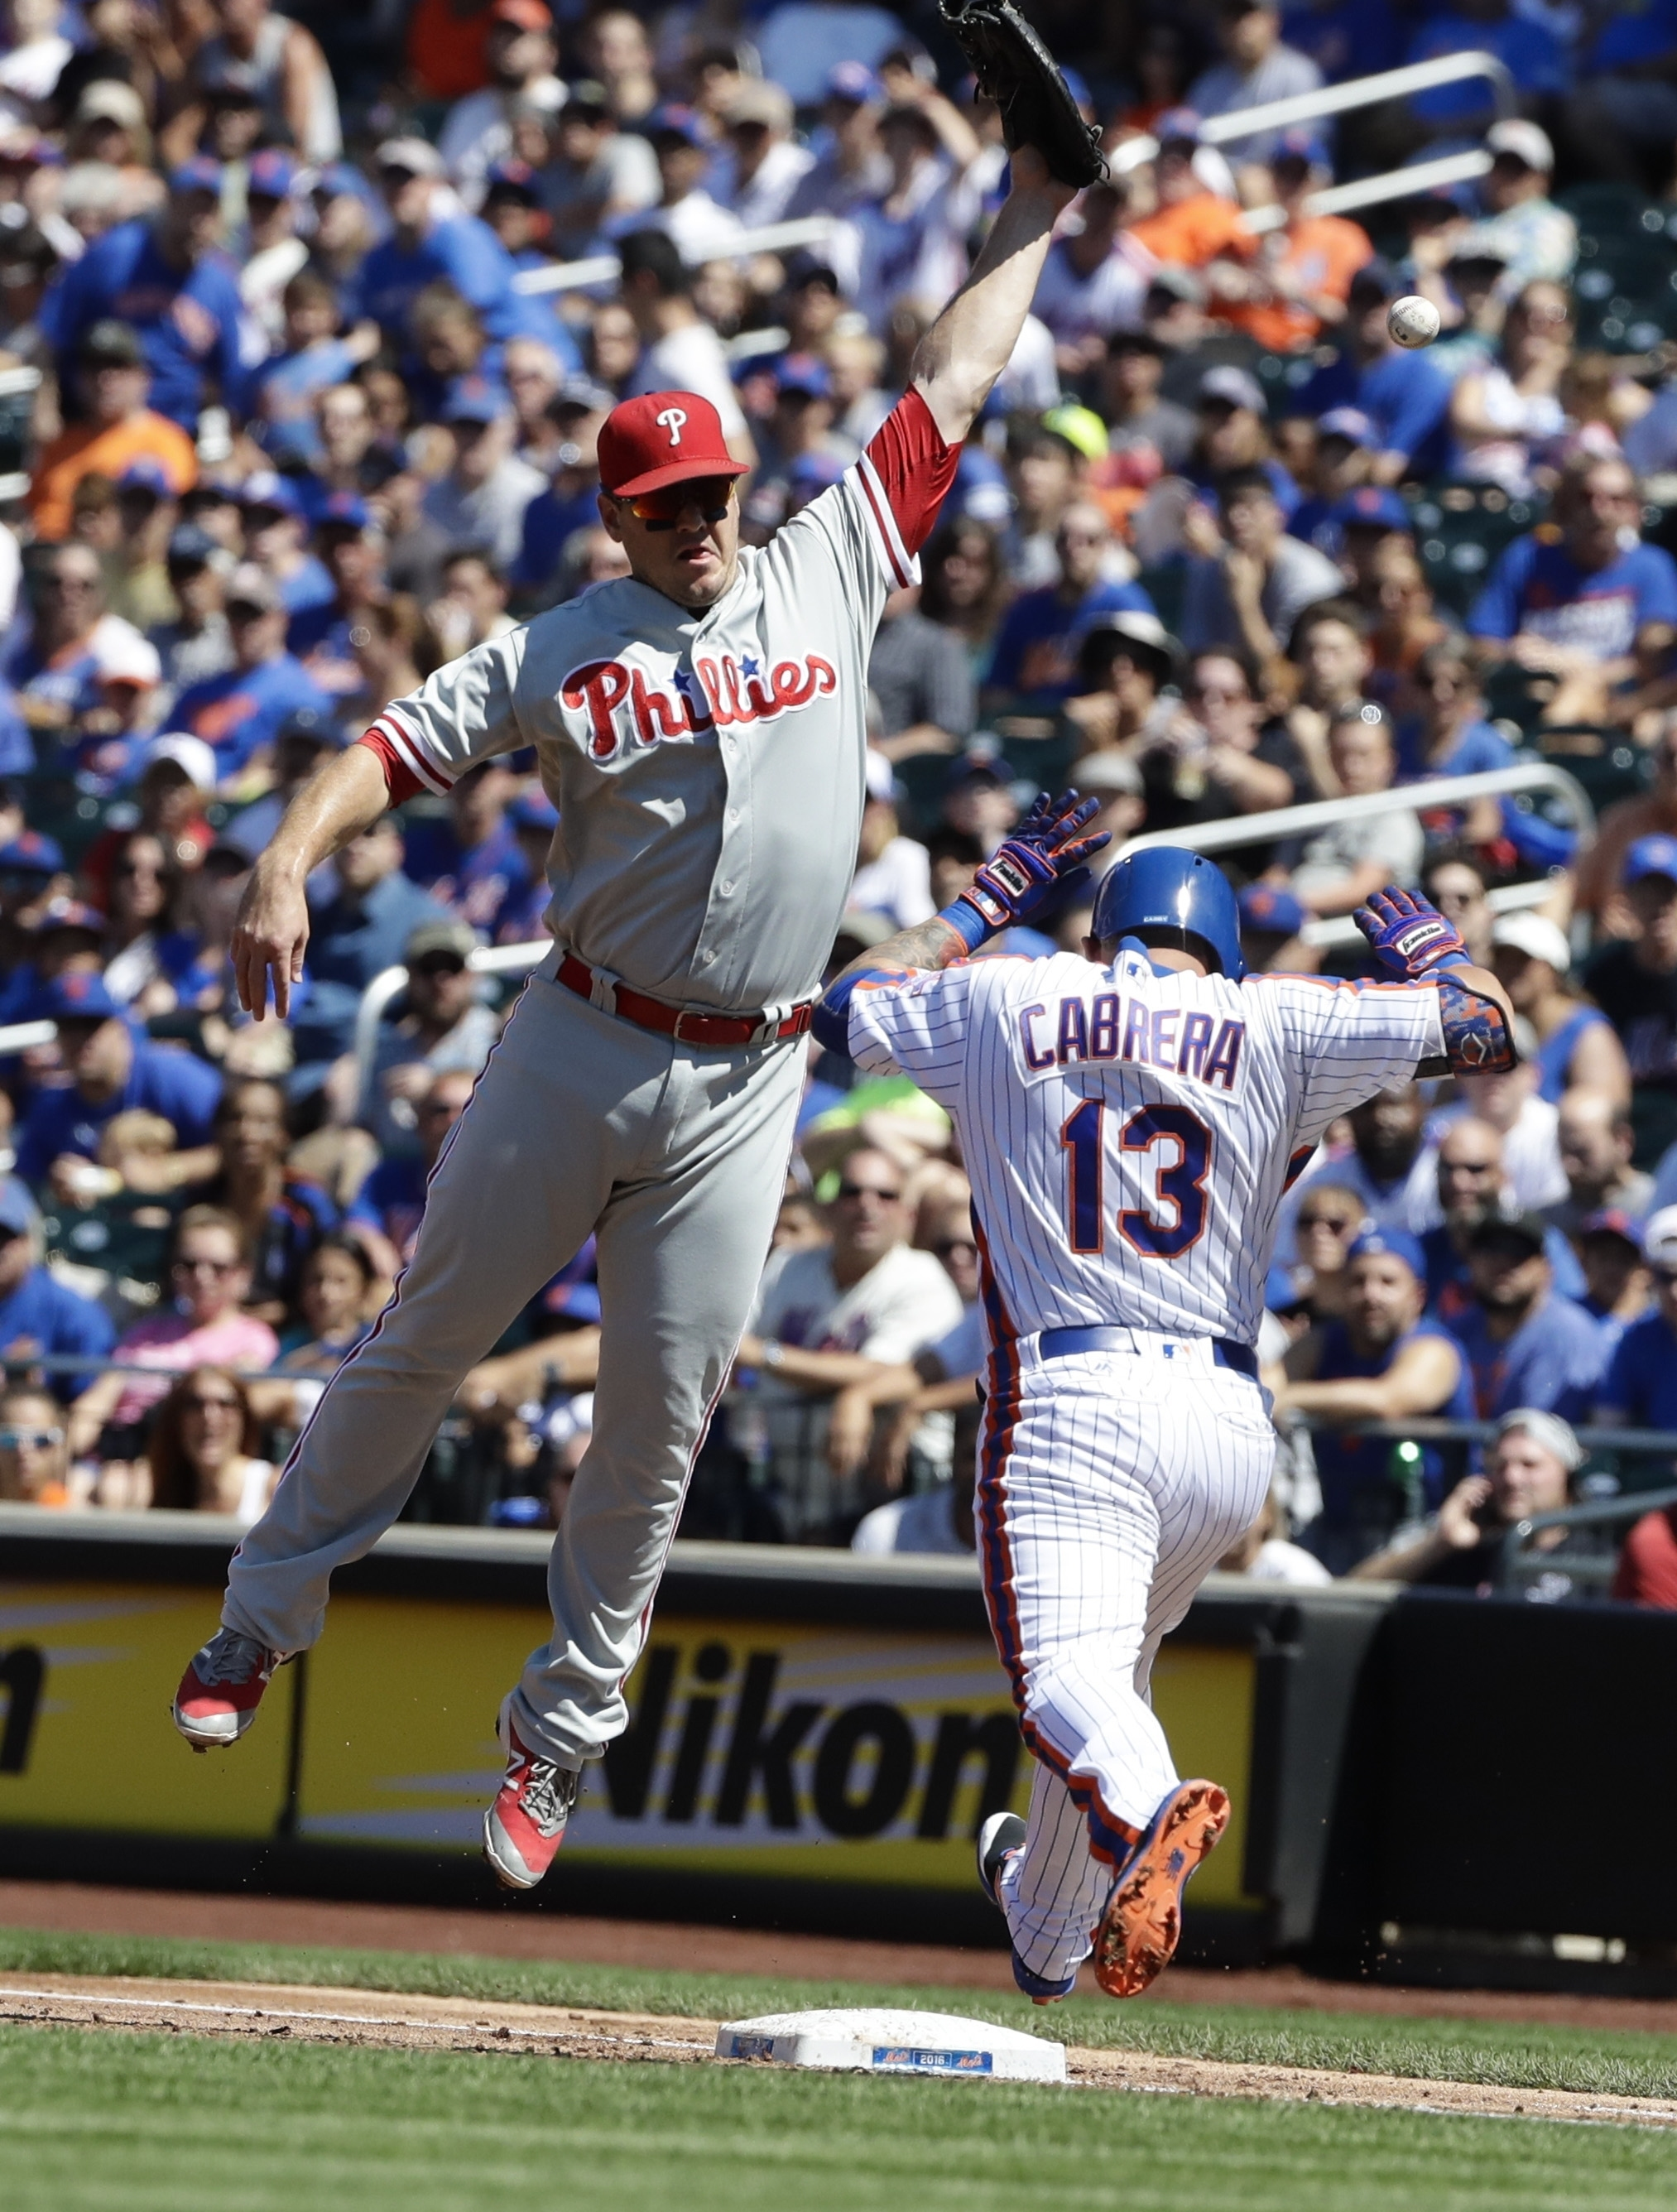 Philadelphia Phillies first baseman Tommy Joseph loses control of the ball as New York Mets' Asdrubal Cabrera (13) beats the throw to first base of a baseball game Sunday, Aug. 28, 2016, in New York. Cabrera was injured on the play. (AP Photo/Frank Frankl